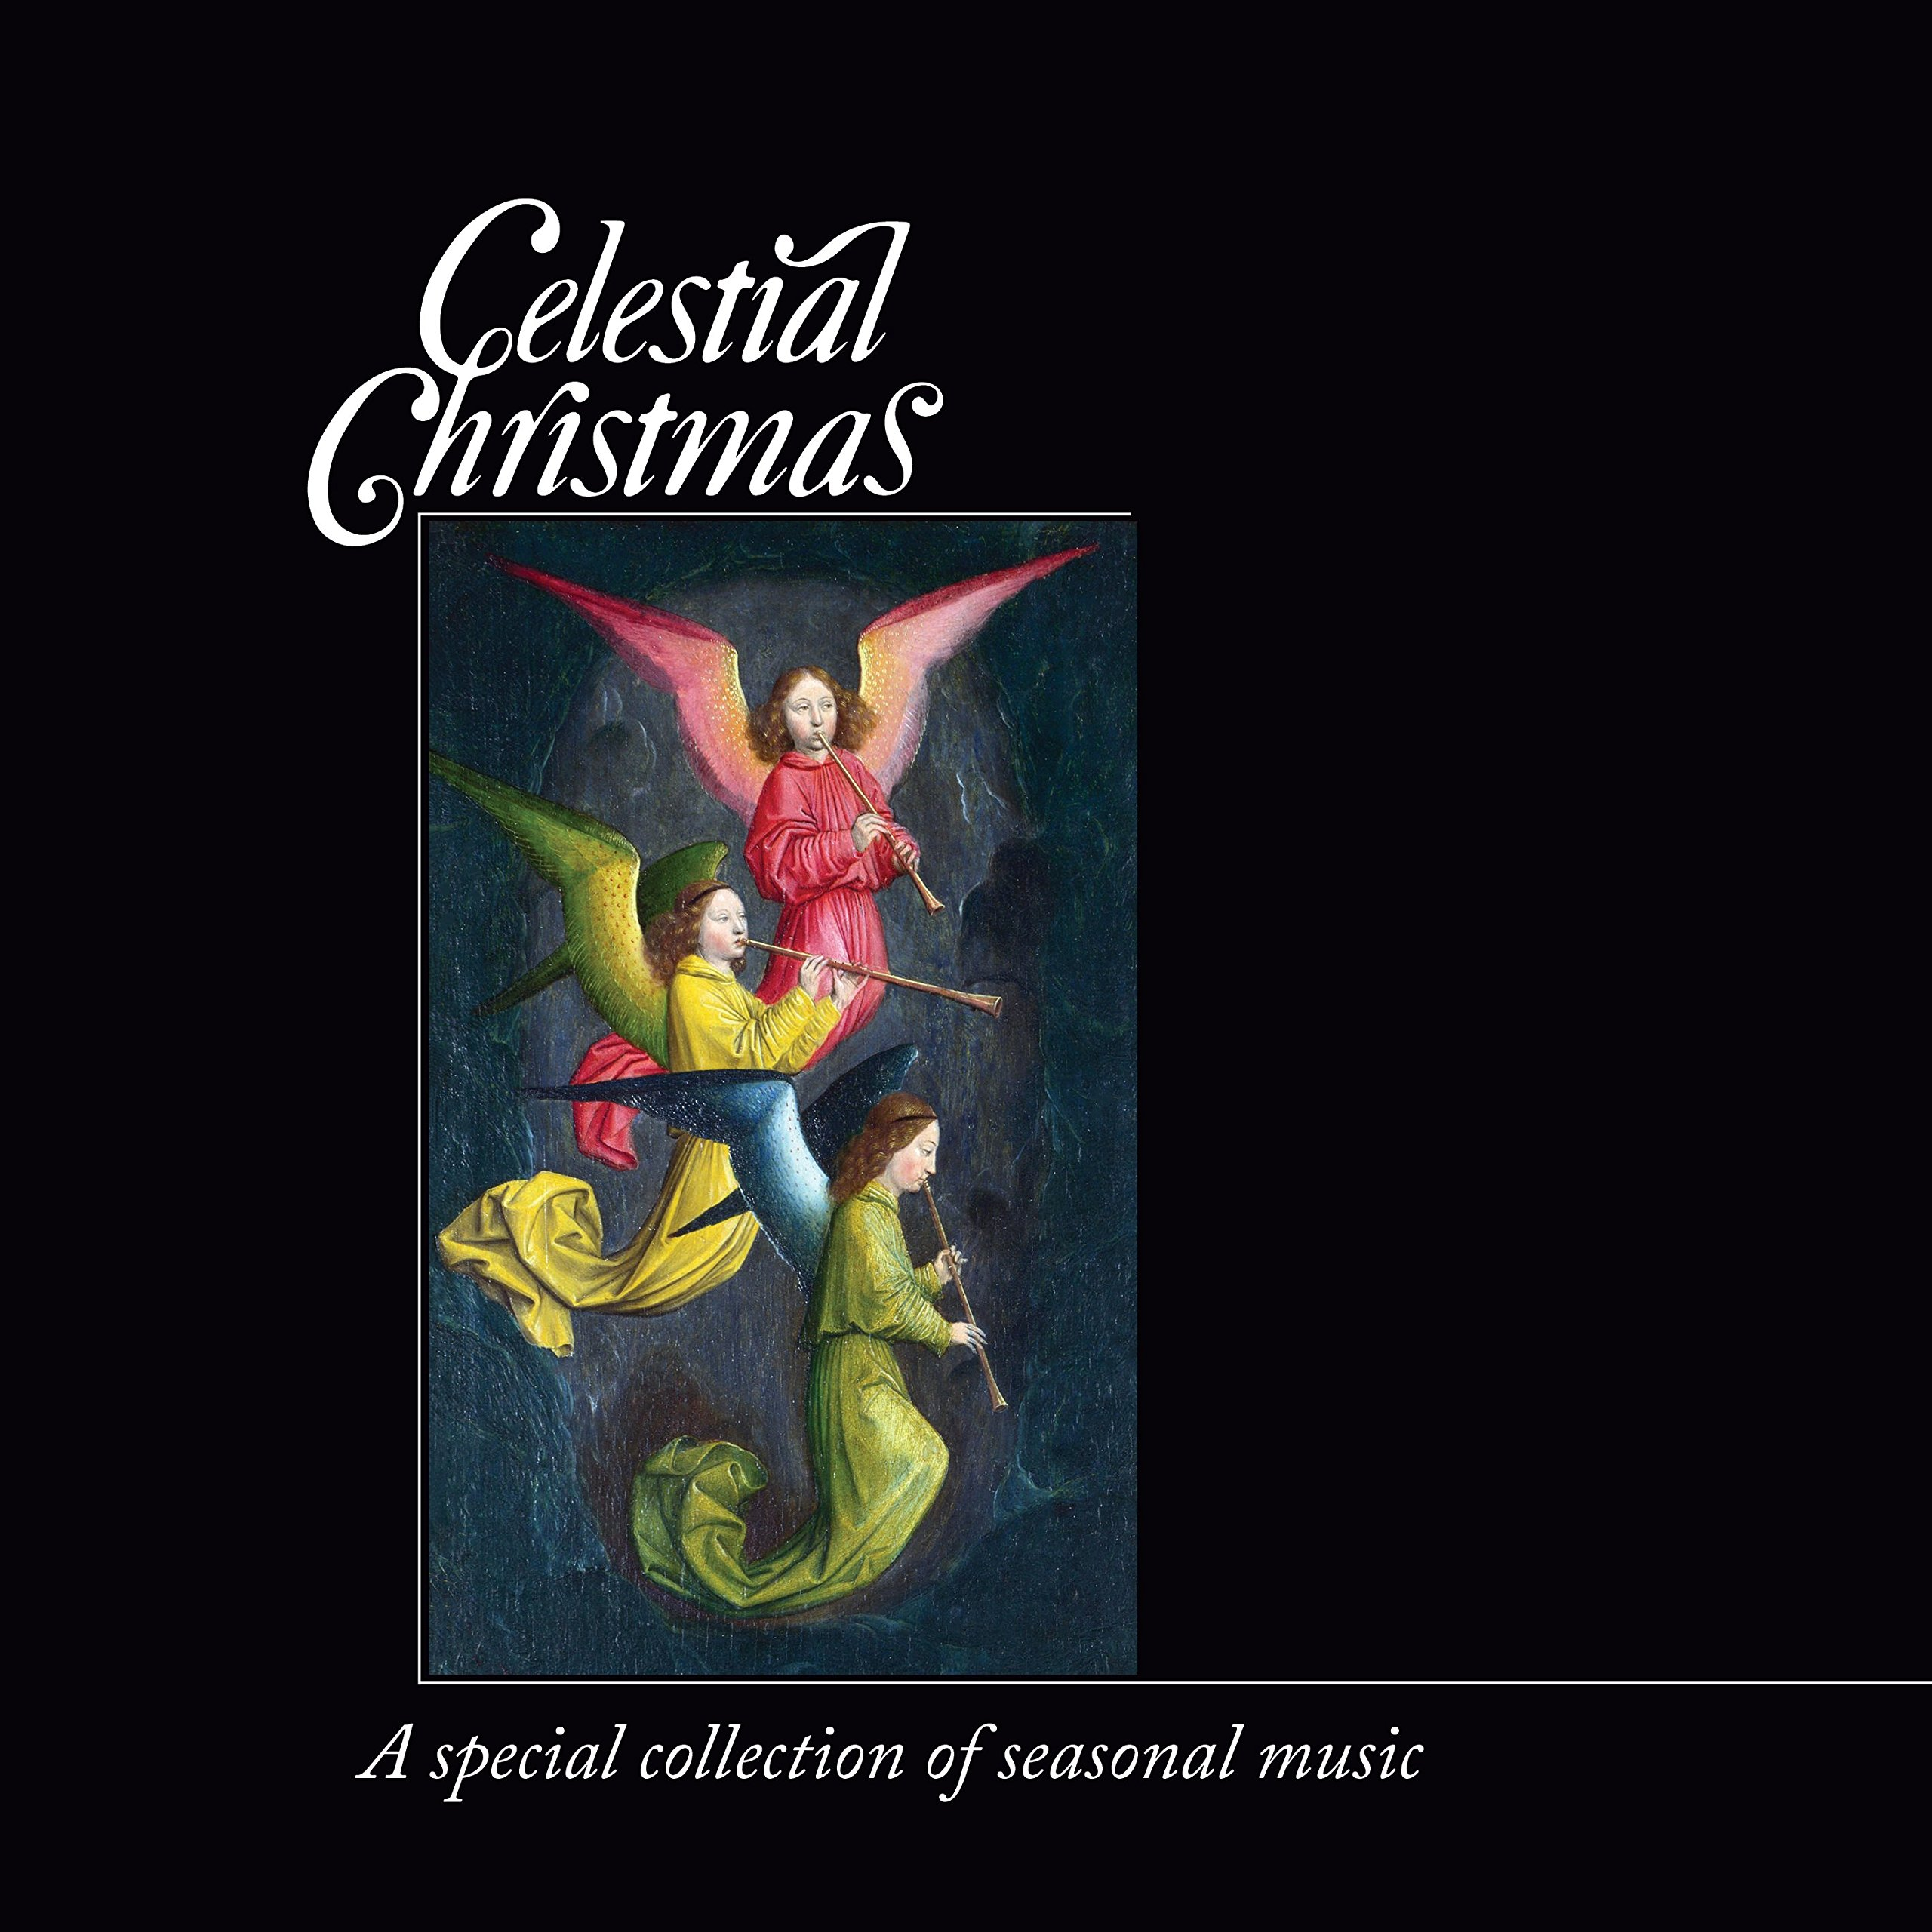 Celestial Christmas: A Special Collection of Seasonal Music by Celestial Harmonies